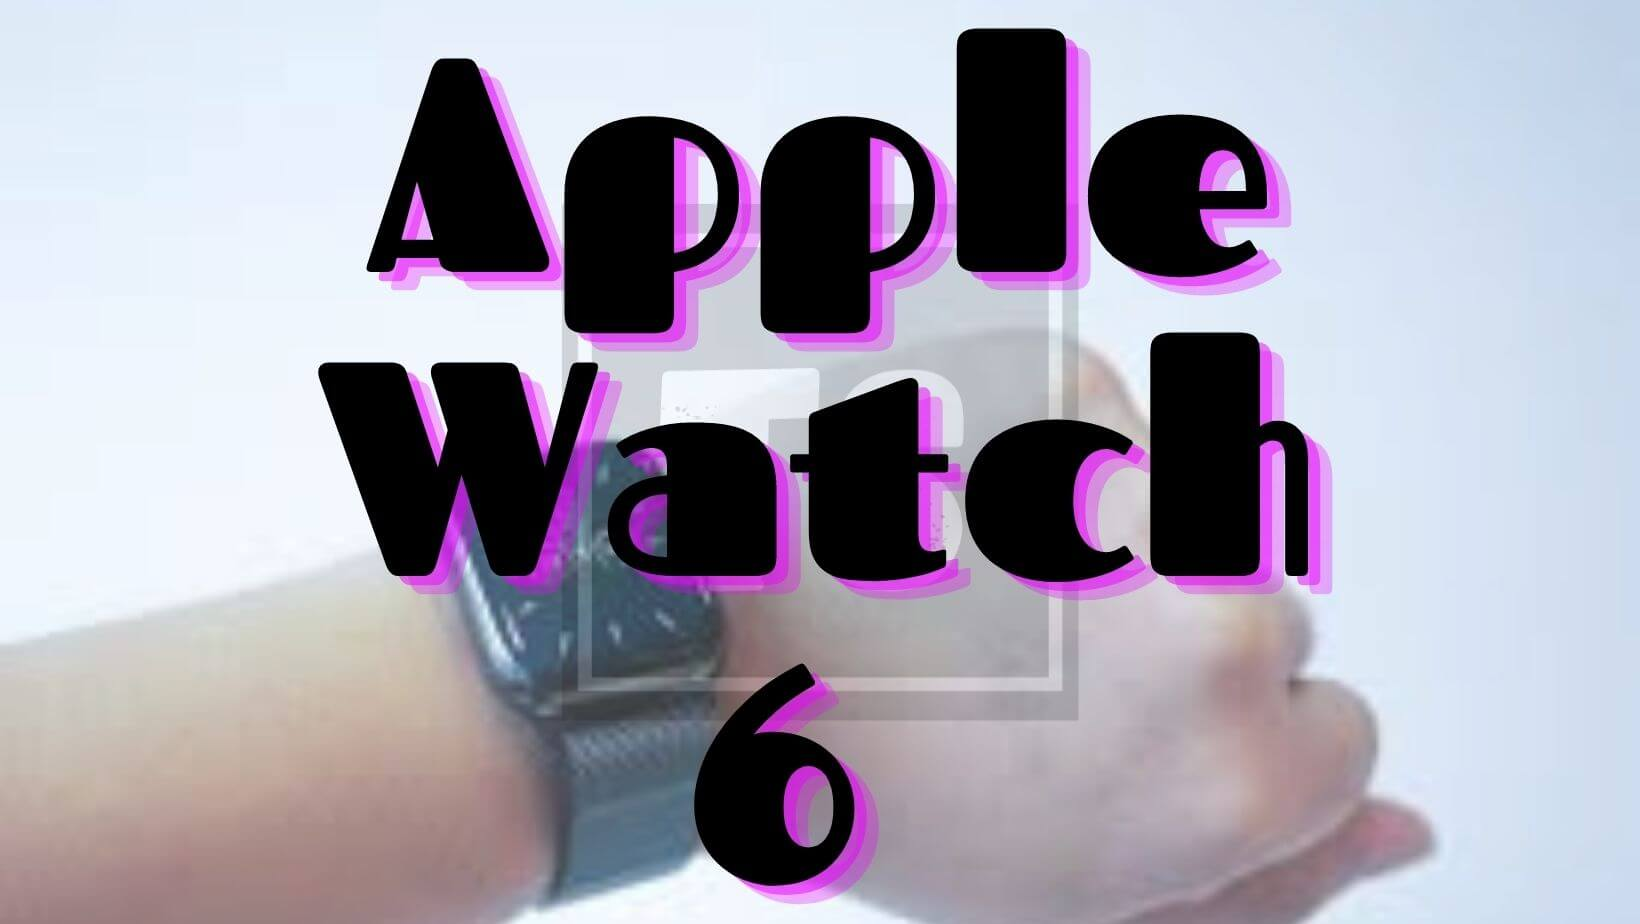 Apple watch series 6 : Release date and price